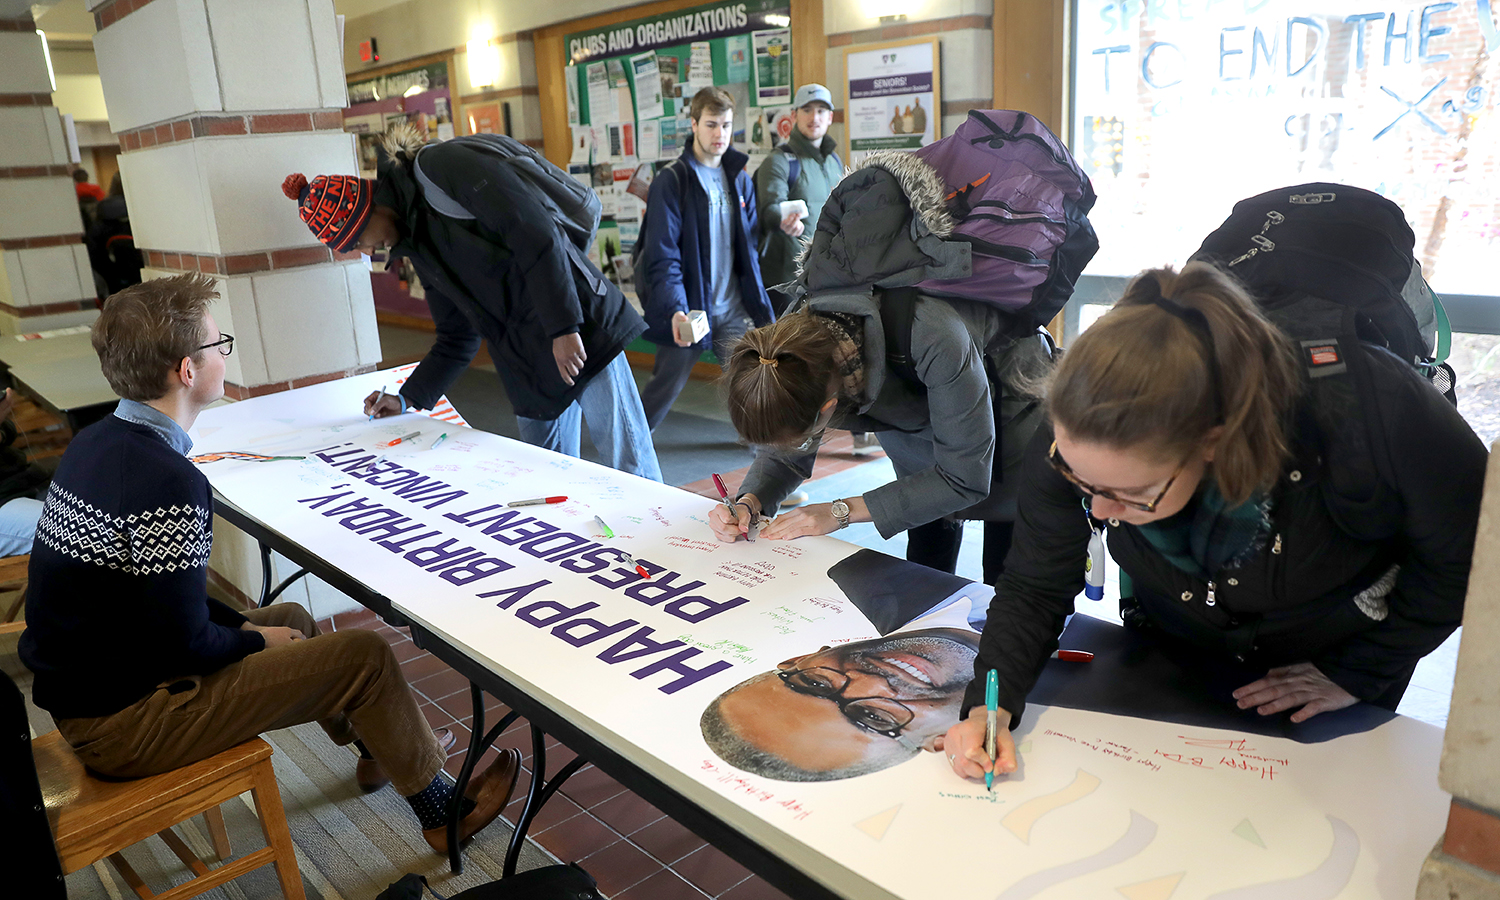 In Scandling Campus Center, students sign a banner for President Gregory J. VIncent '83 in celebration of his birthday on Sunday.